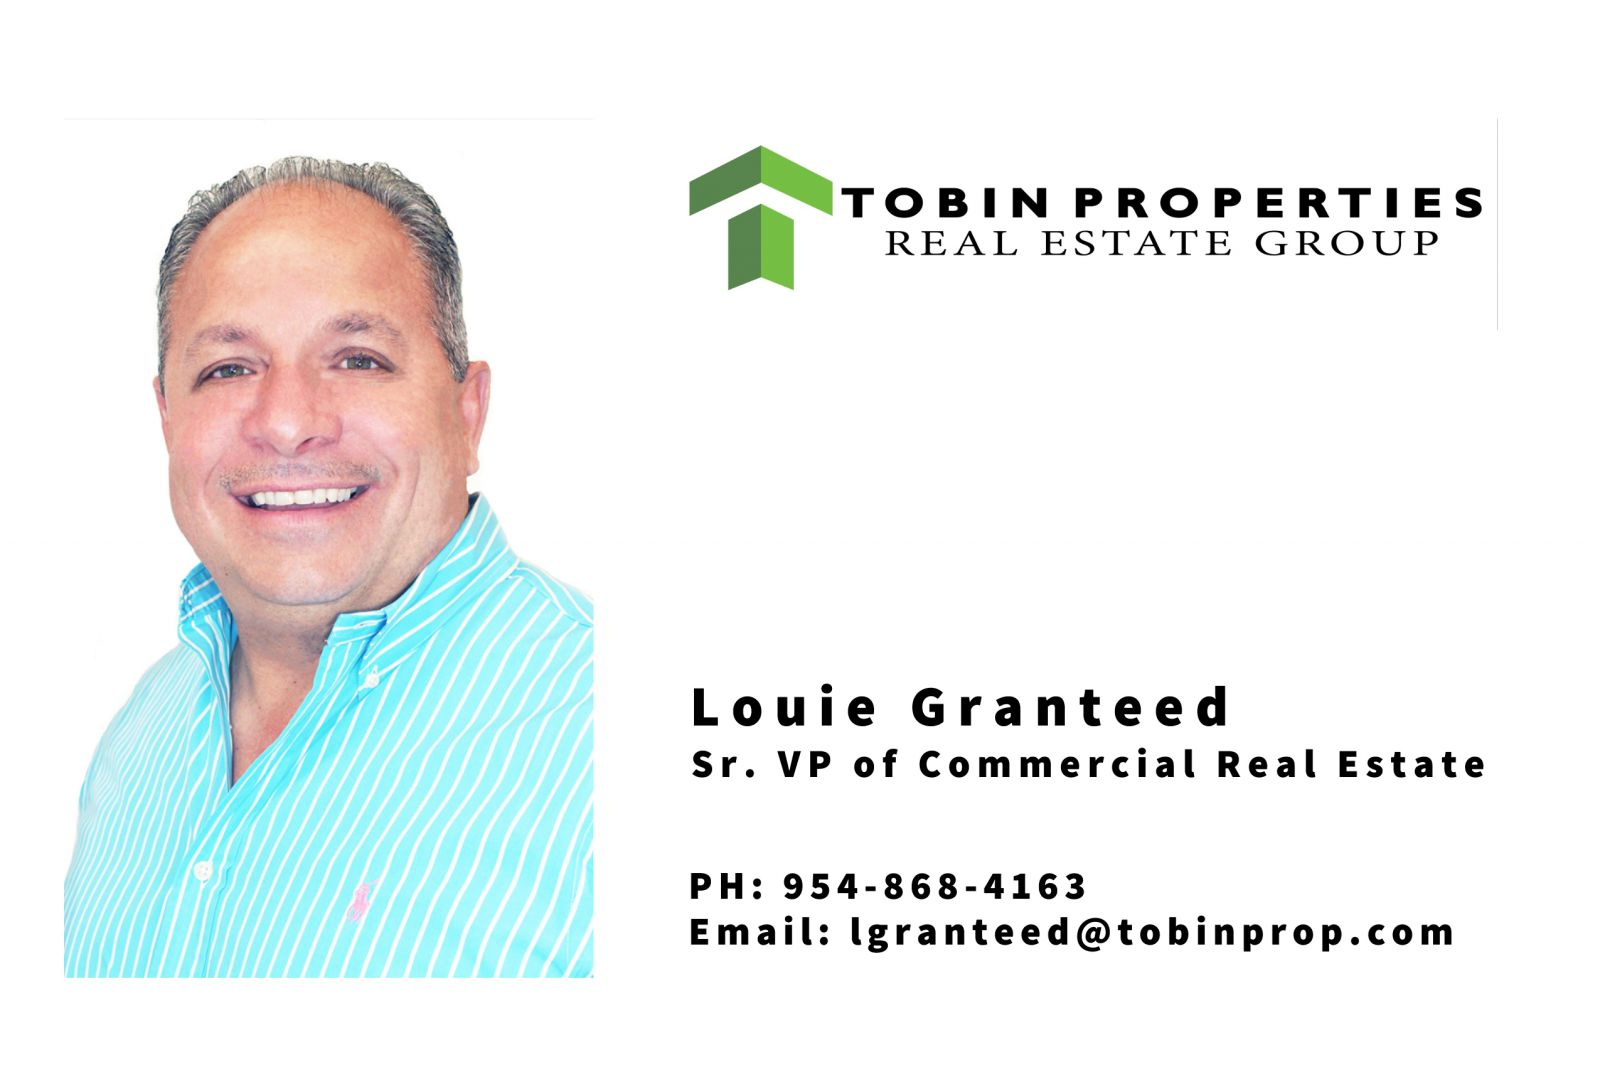 image of Louie Granteed, Sr VP of Commercial Real Estate